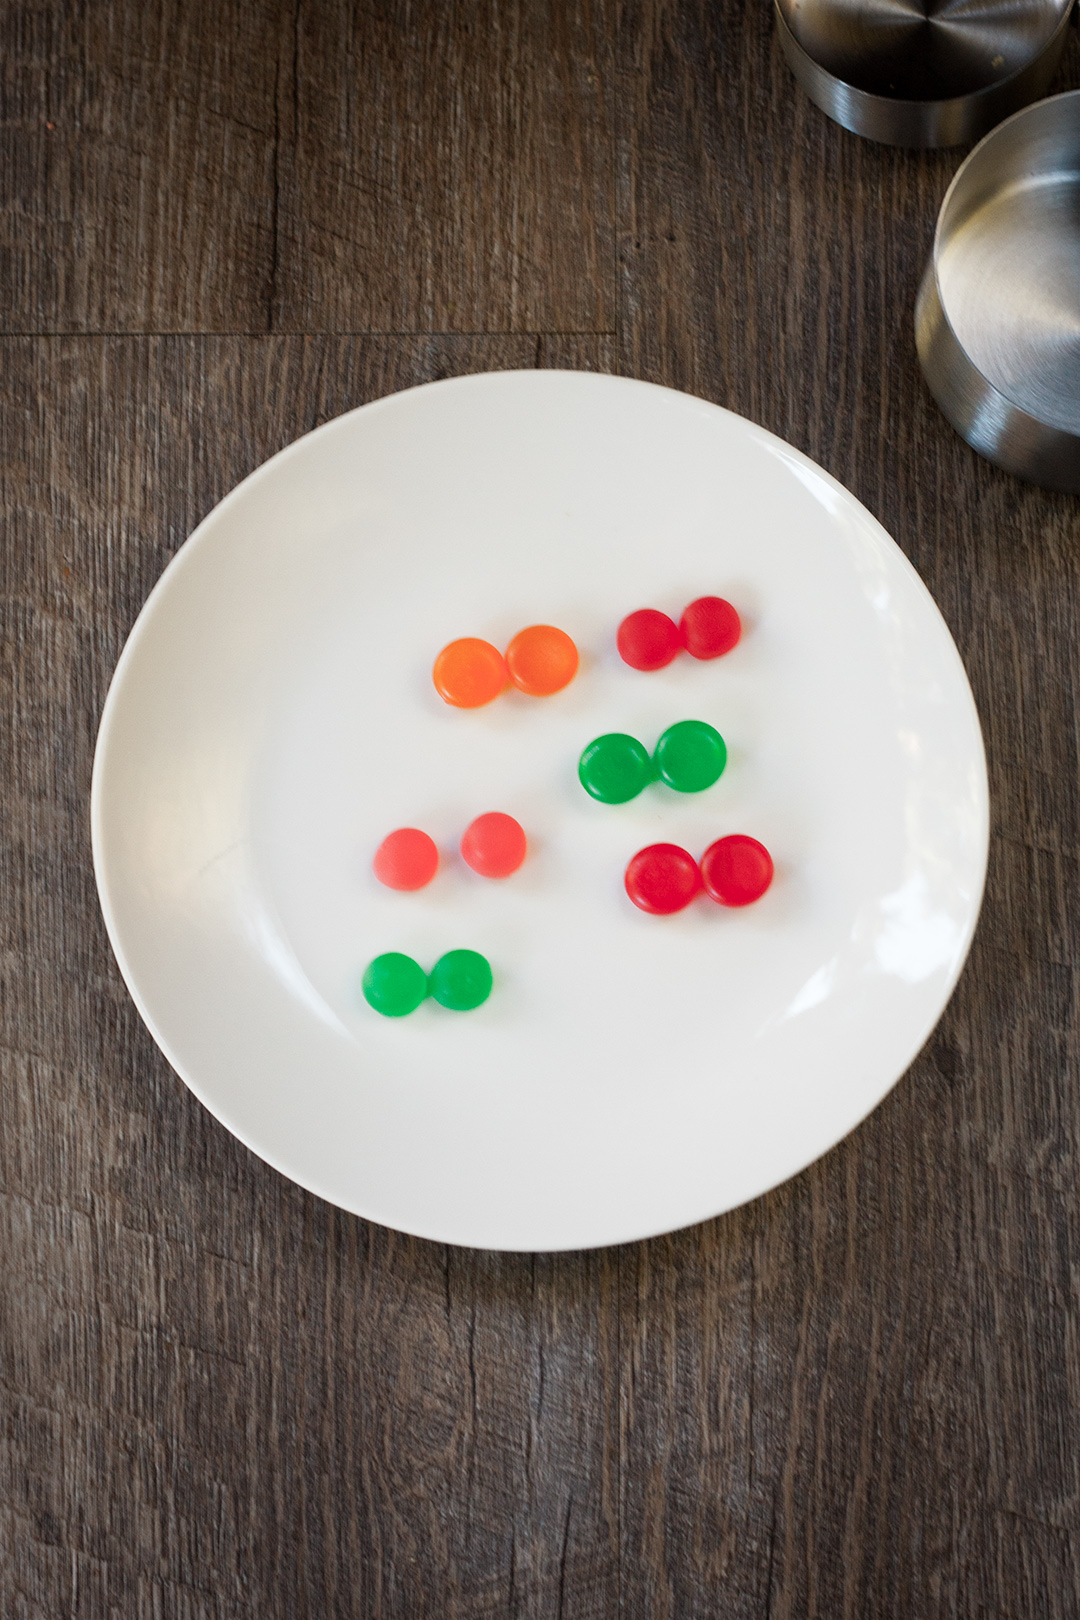 Dots cut in half on a white plate.